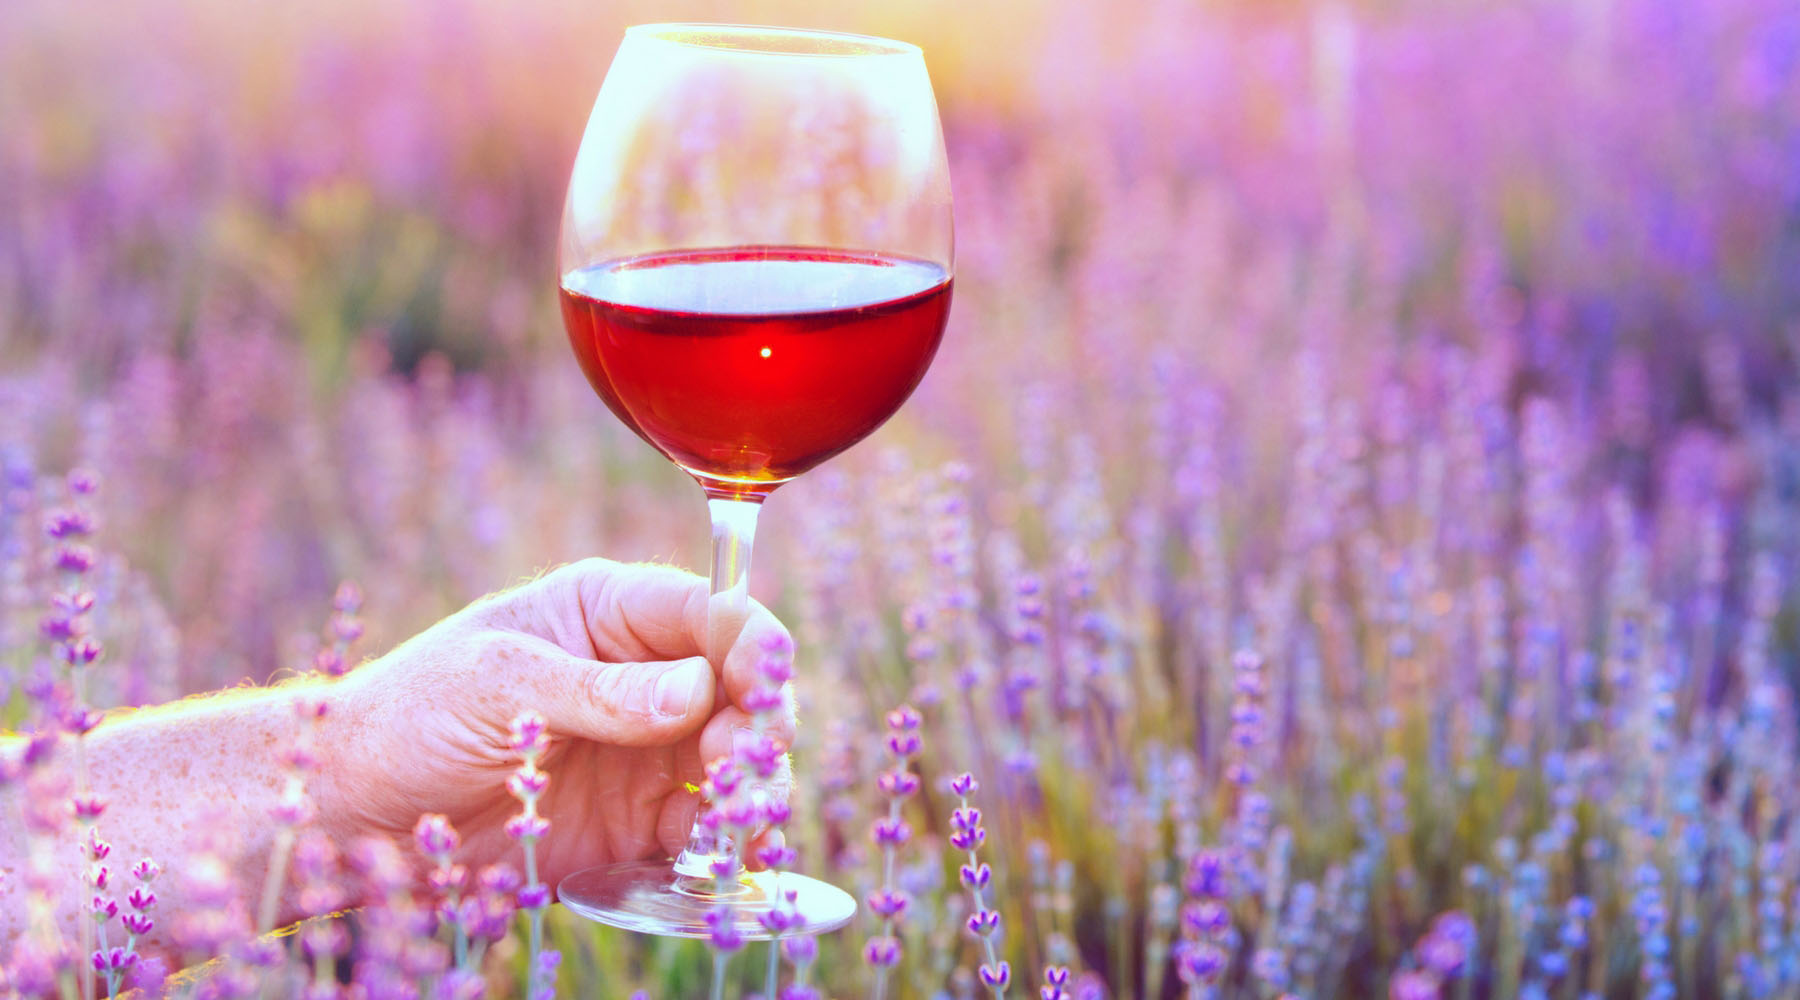 A woman holds a glass of rose wine in front of a field of lavender.